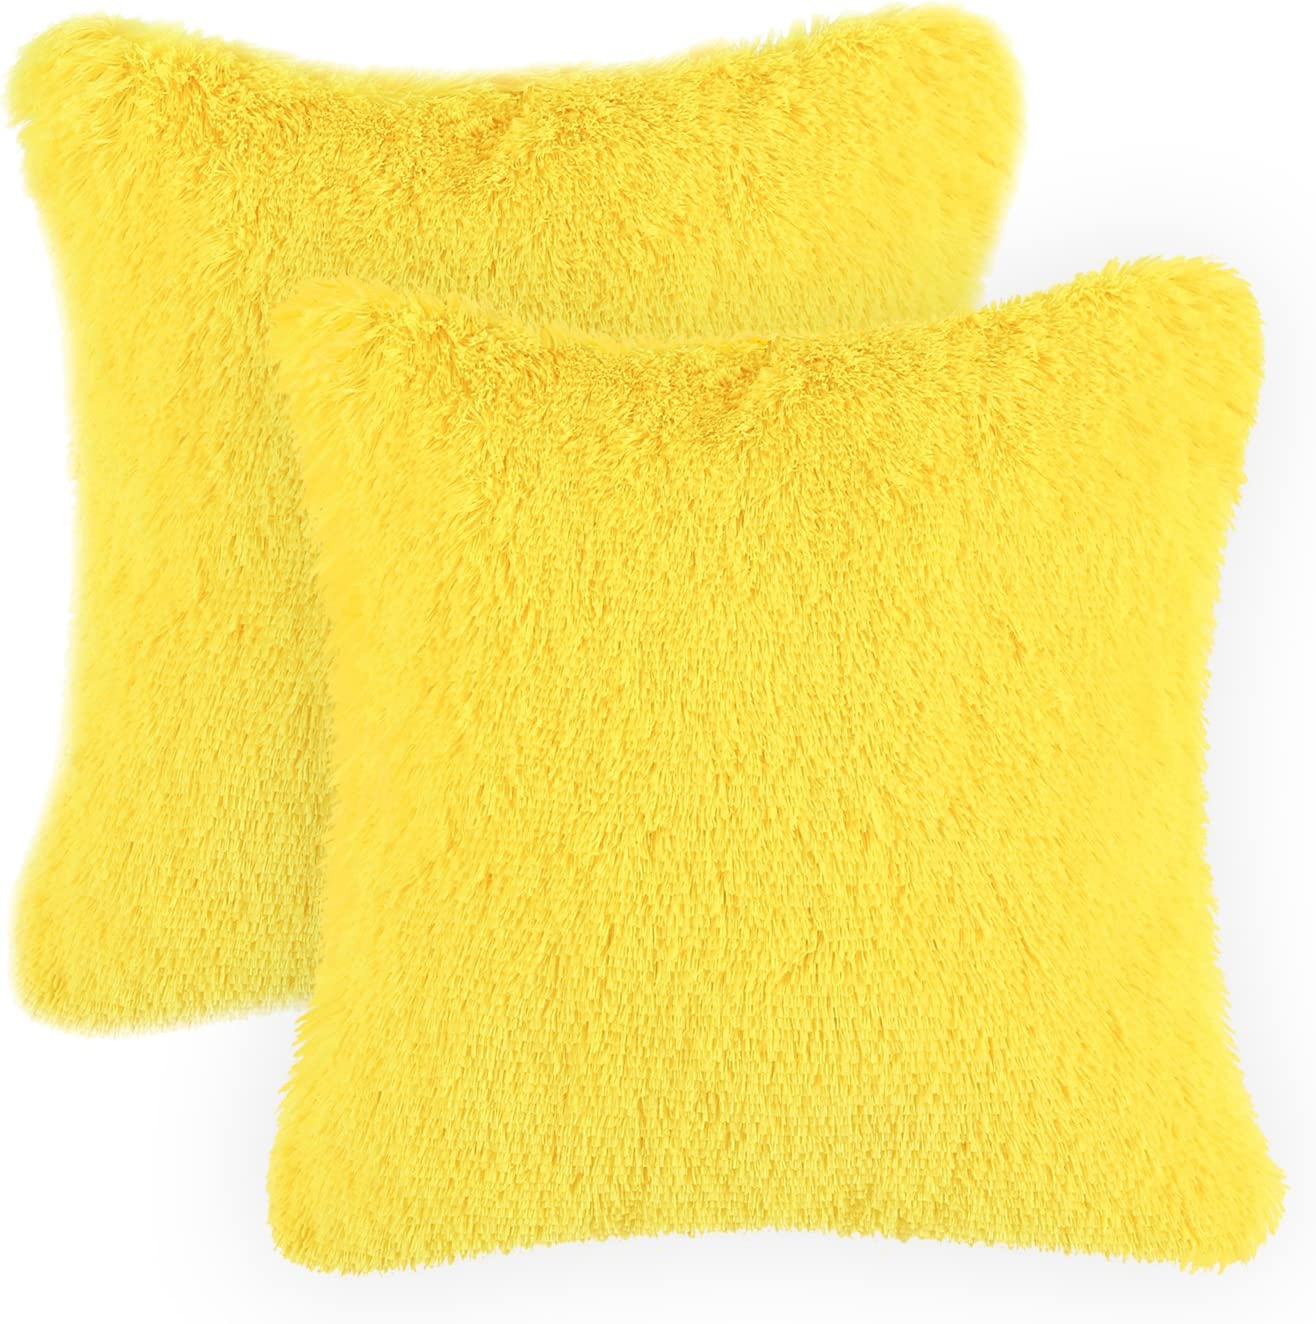 CaliTime Pack of 2 Super Soft Throw Pillow Covers Cases for Couch Sofa Bed Solid Plush Faux Fur 18 X 18 Inches Maize Yellow